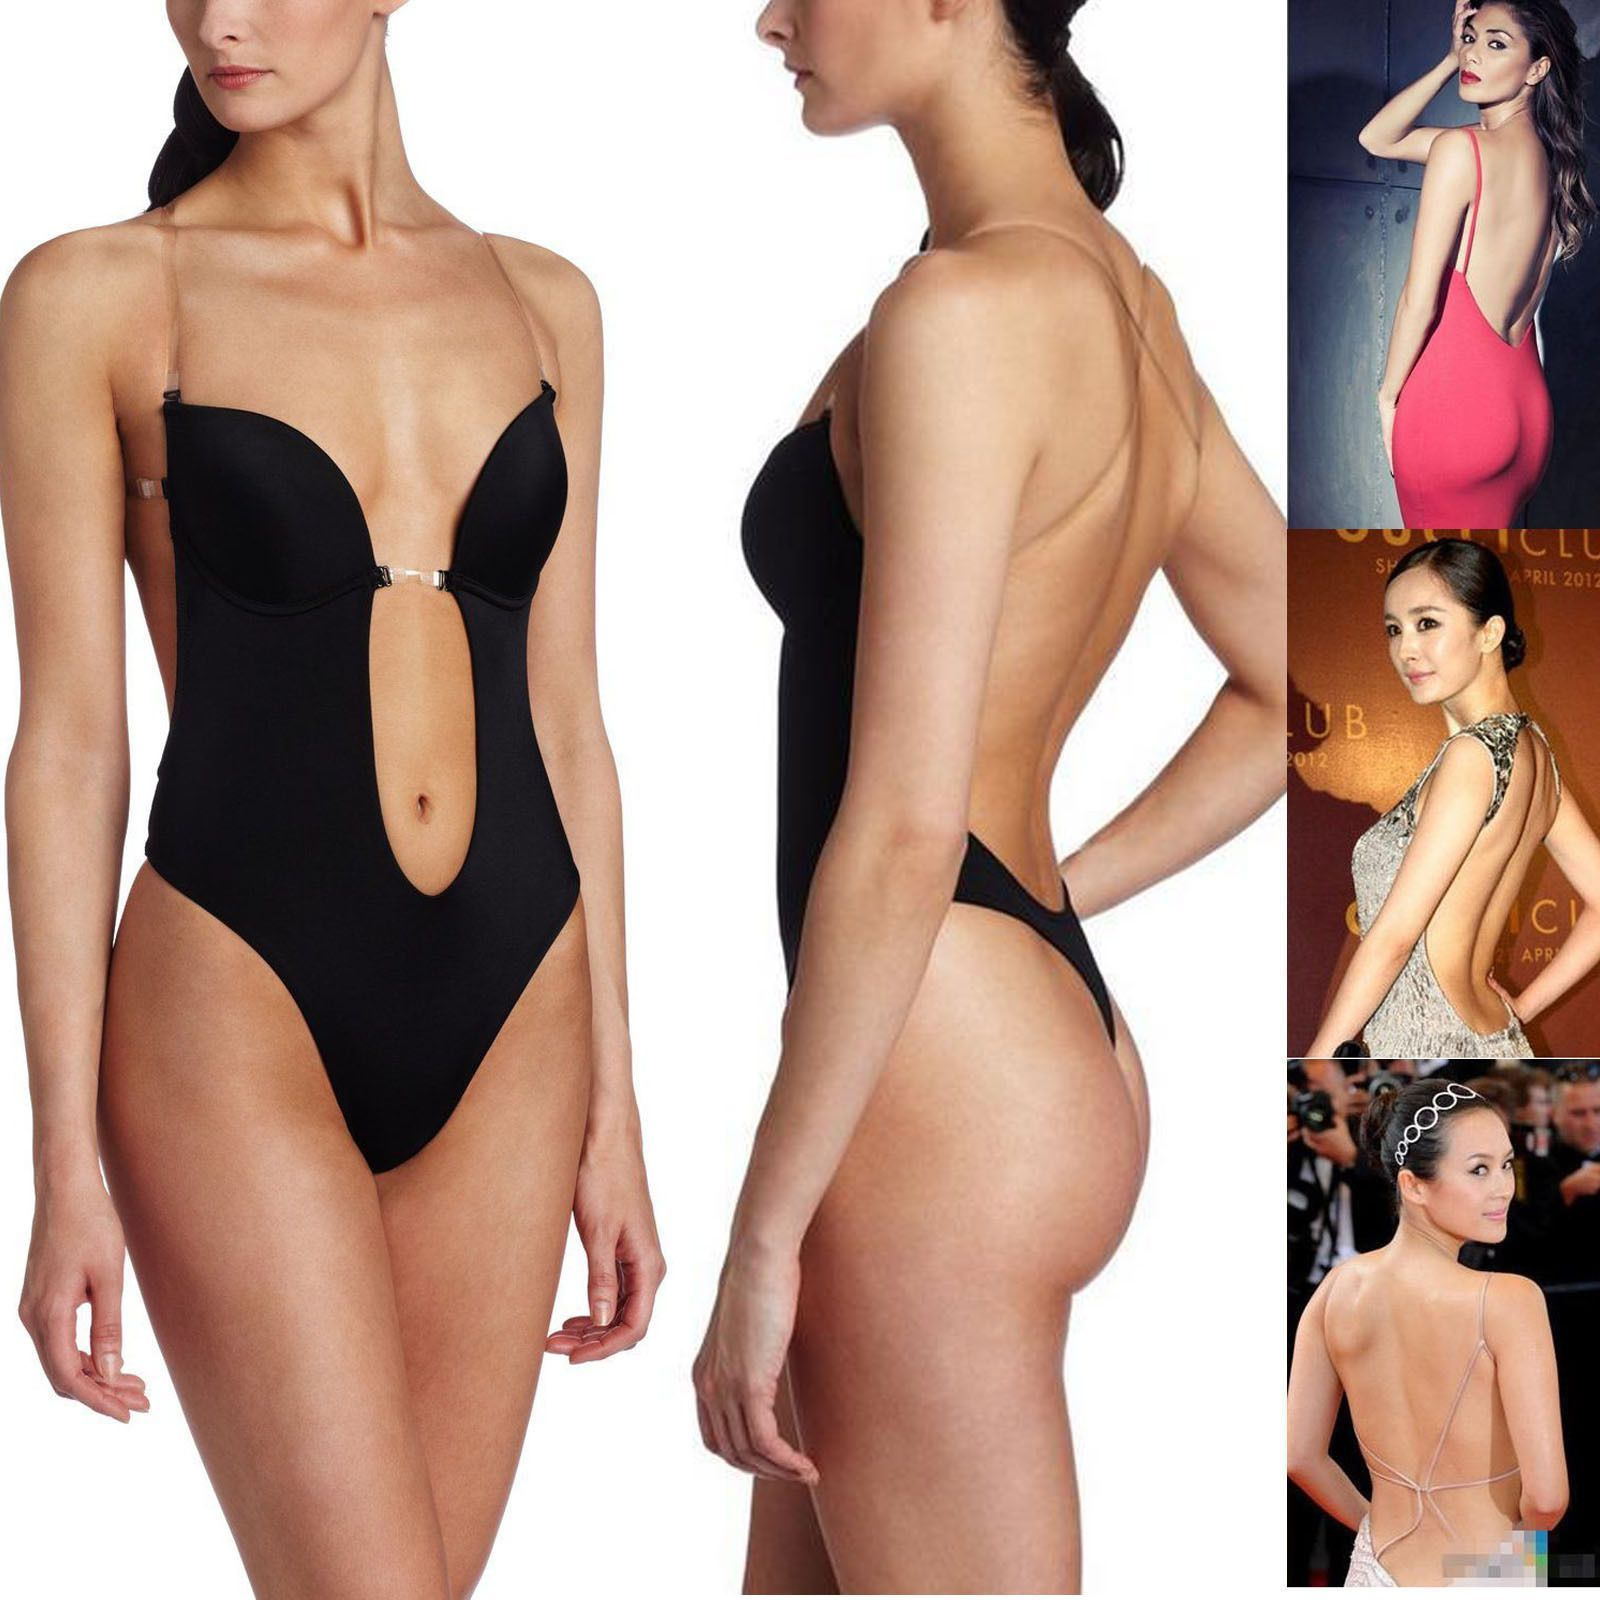 412225a9a8 Hot Backless Bra DEEP Plunge THONG CLEAR STRAP Convertible BODY SHAPER  Shapewear